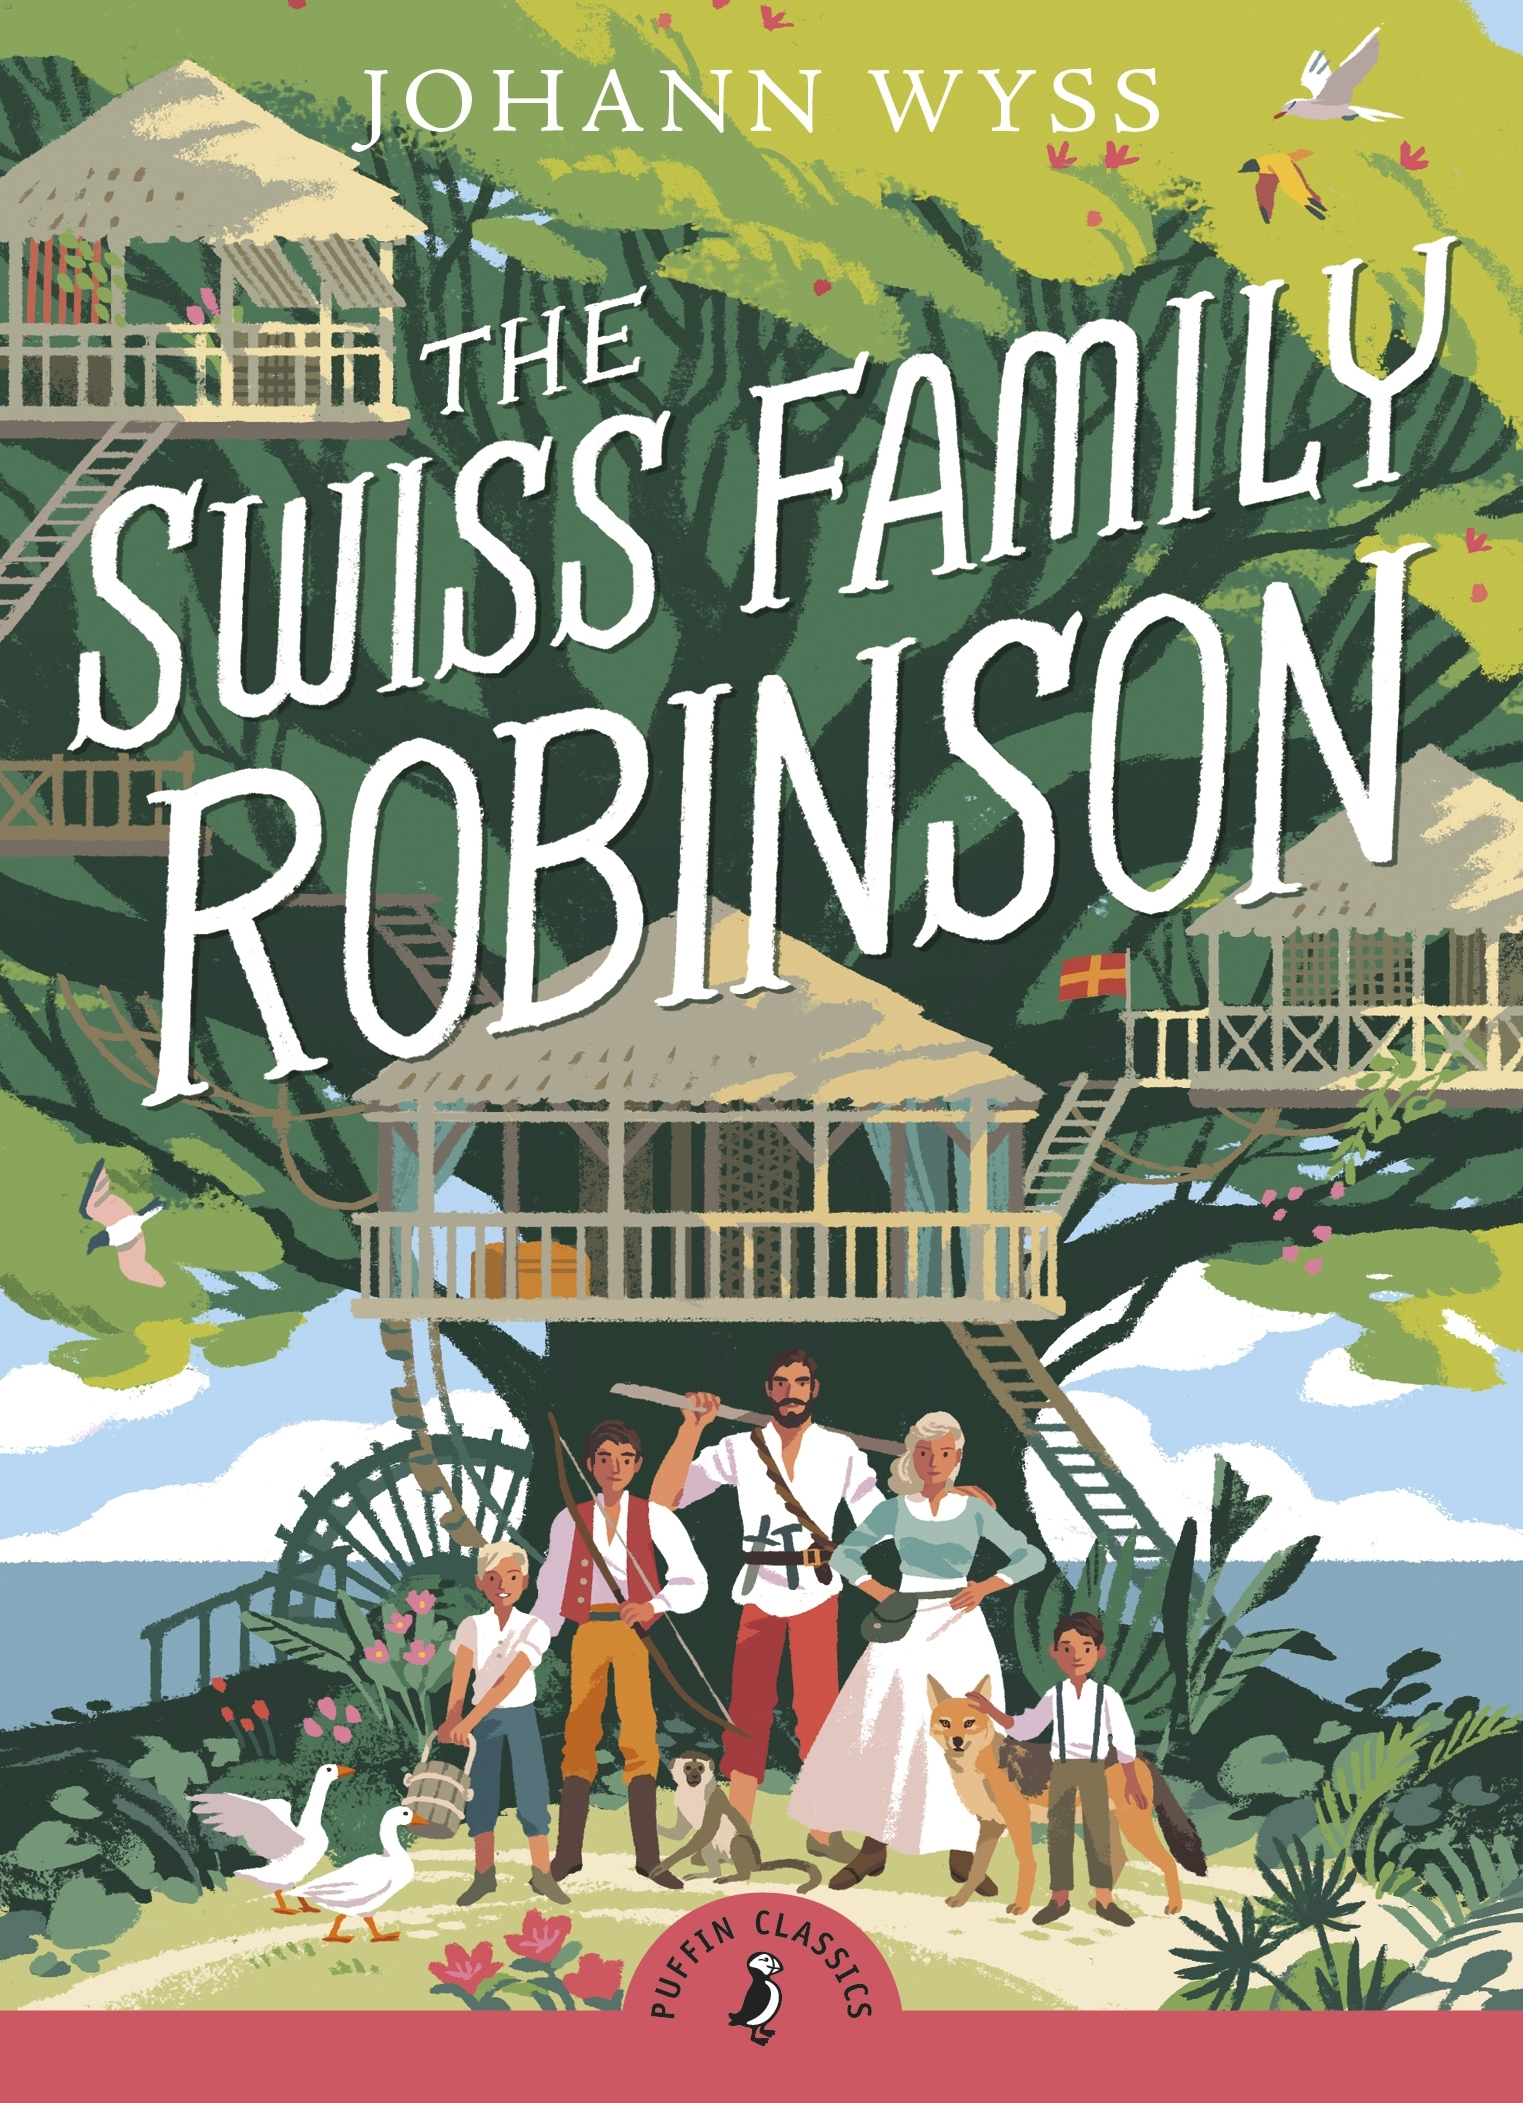 the swiss family robinson book report The swiss family robinson by johann wyss is a story about a family who are shipwrecked on an uninhabited island the ship was being tossed by angry waves the whole crew and captain had deserted their ship only to perish to the sea the only ones remaining on board was the robinson family when the.